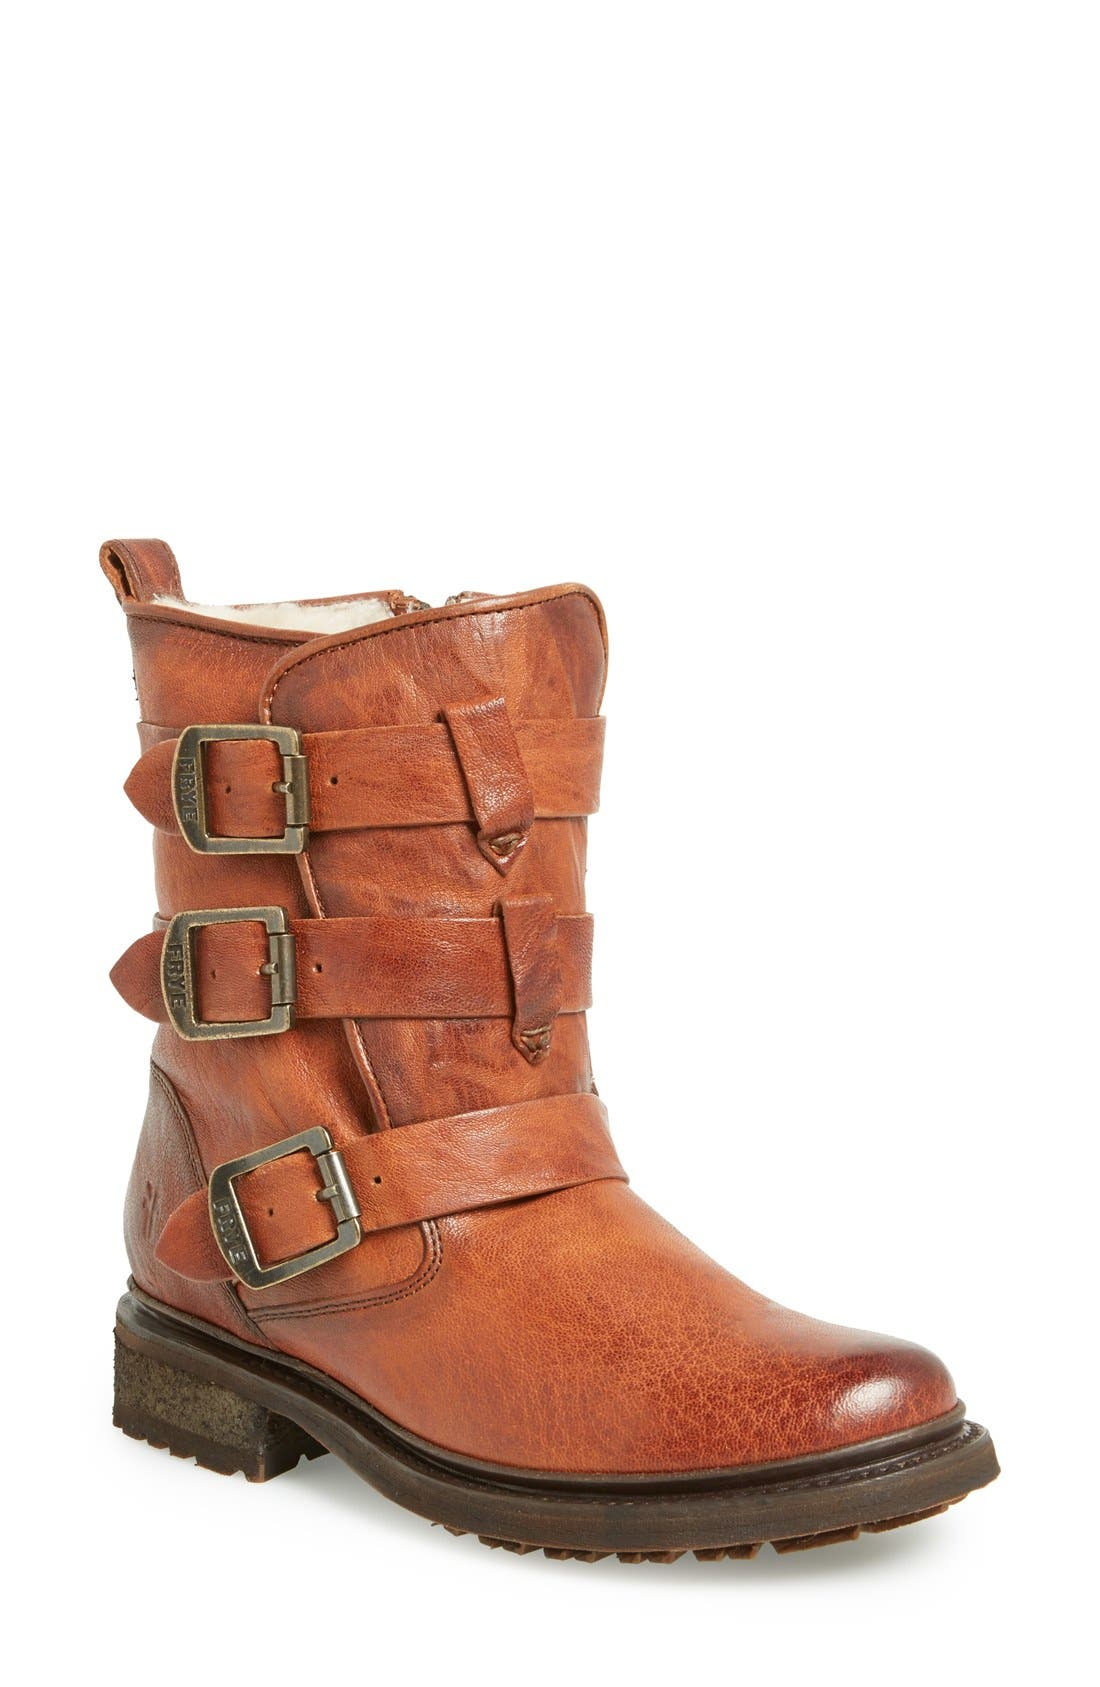 Alternate Image 1 Selected - Frye 'Valerie' Shearling Lined Strappy Boot (Women)